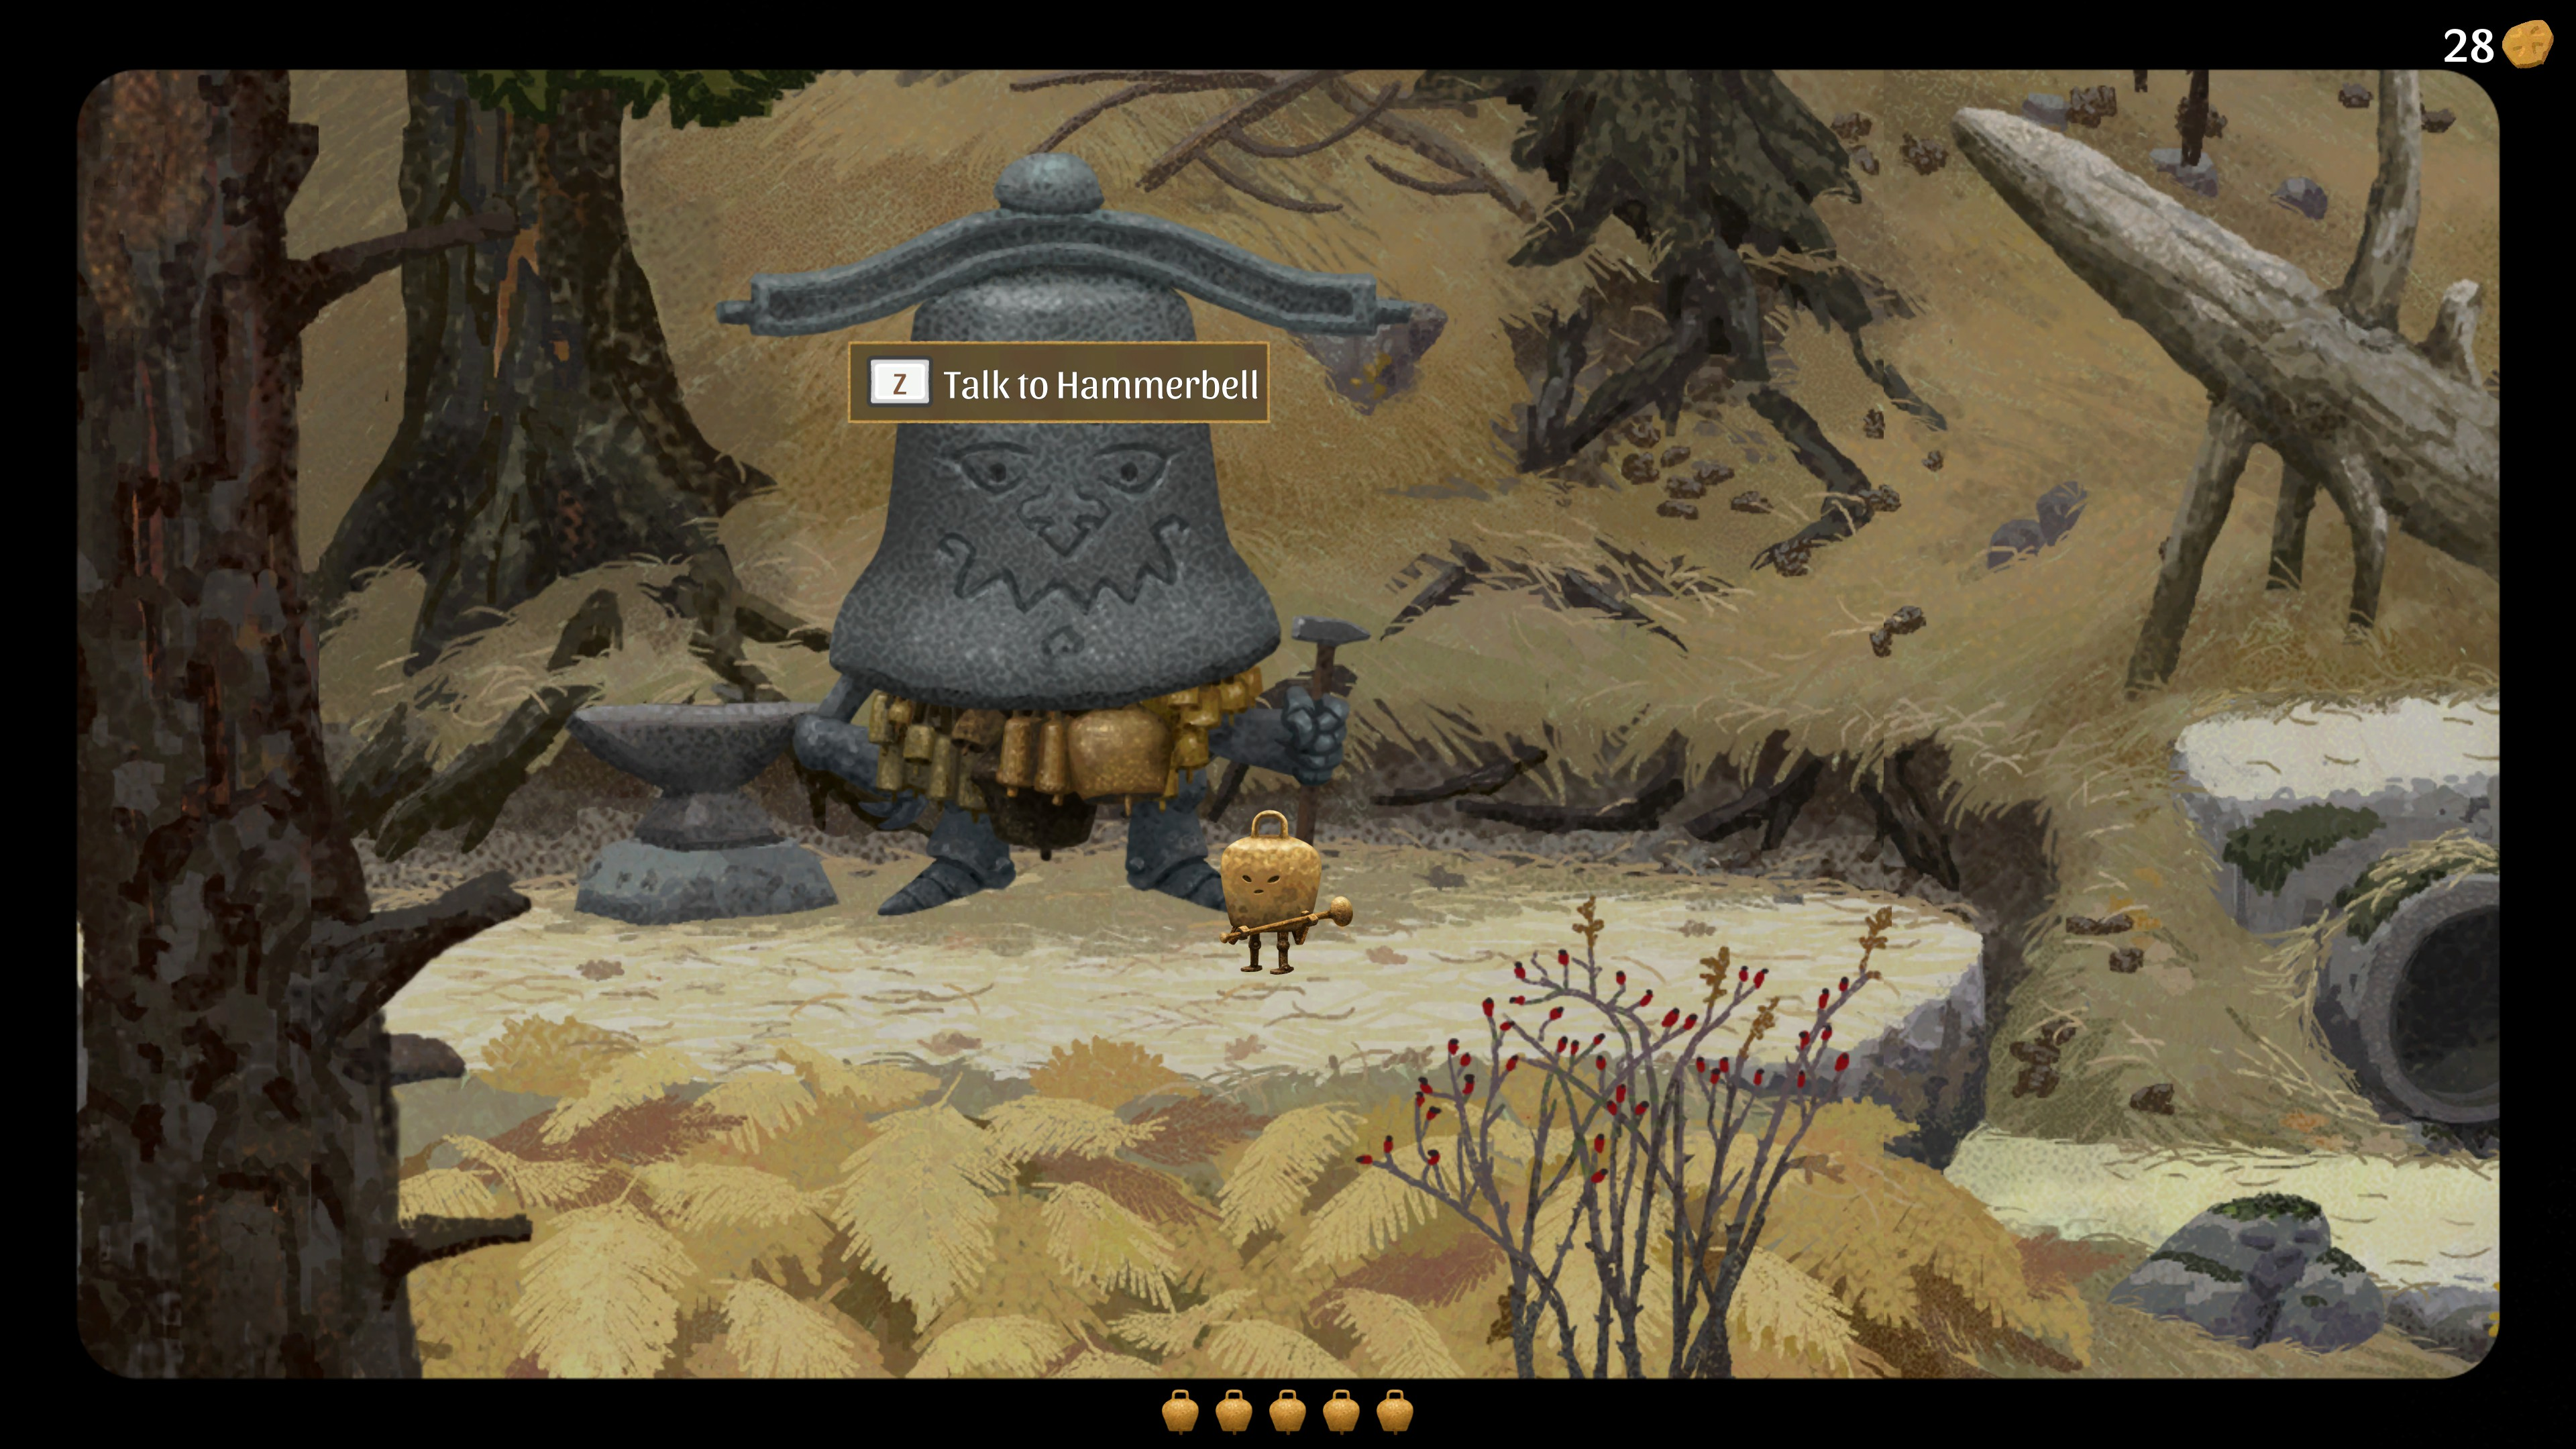 Copperbell. Standing in front of hammerbell, the player has 28 coins displayed in the top right